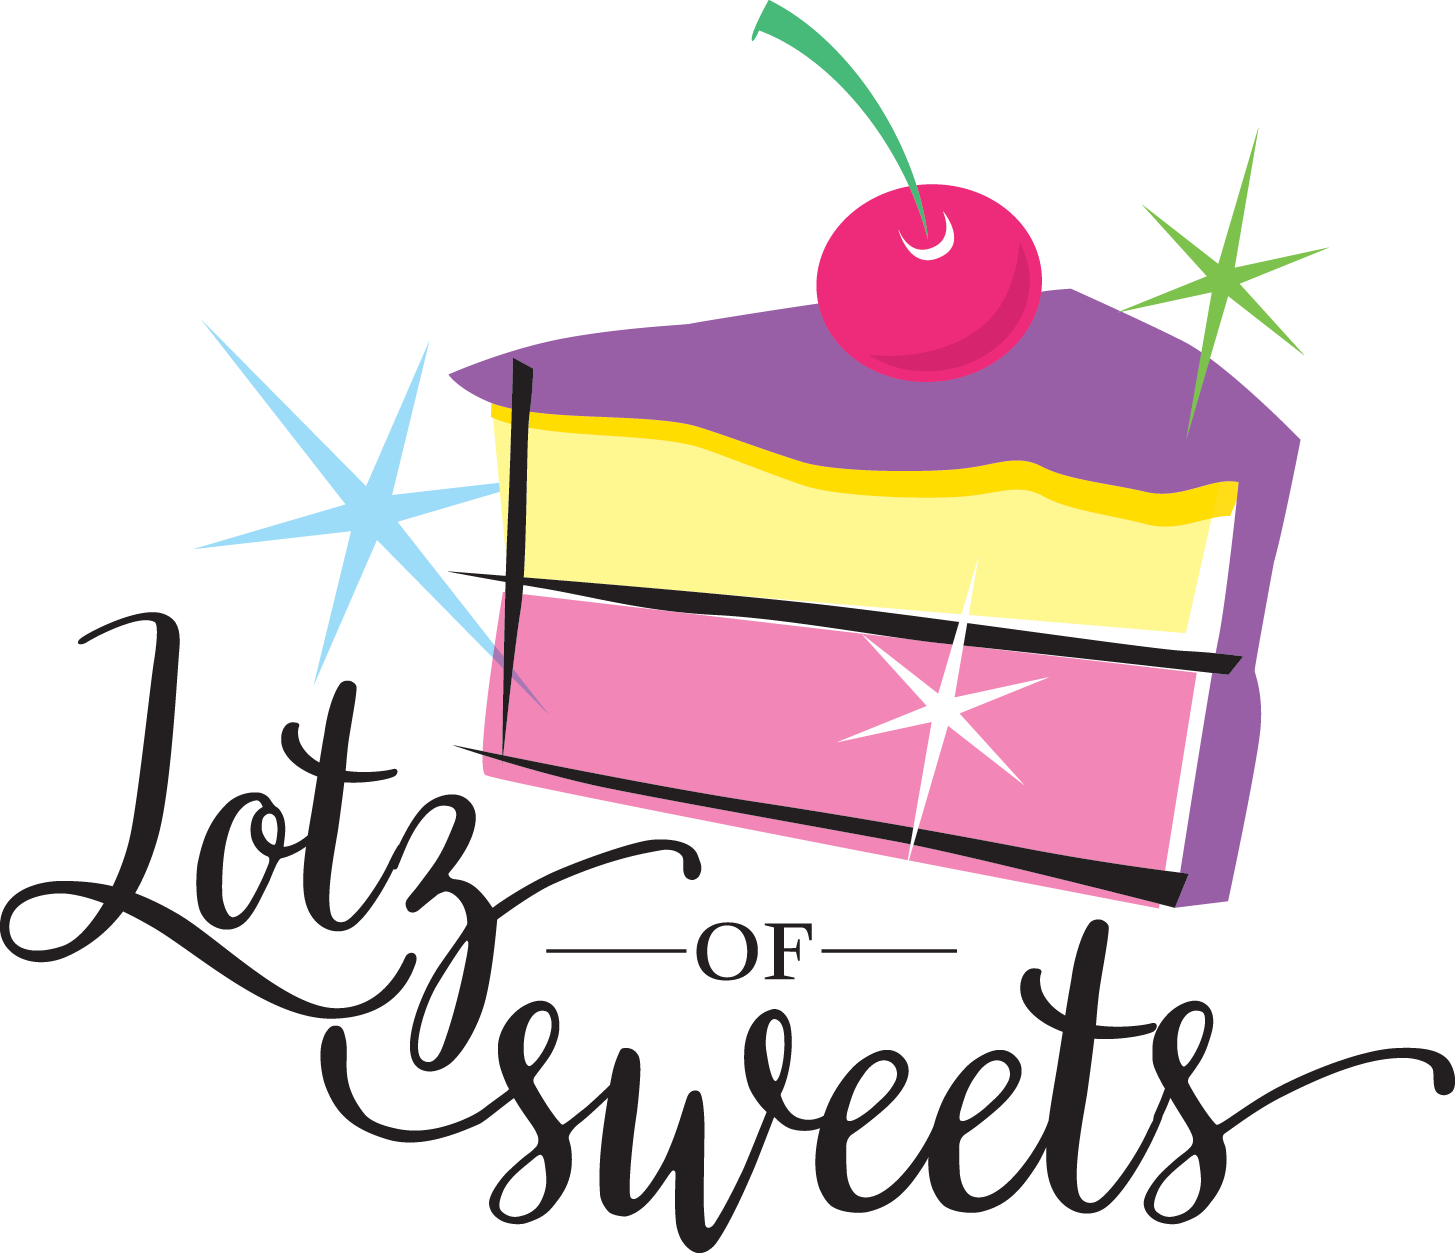 image transparent stock Dessert clipart. Services lotz of sweets.